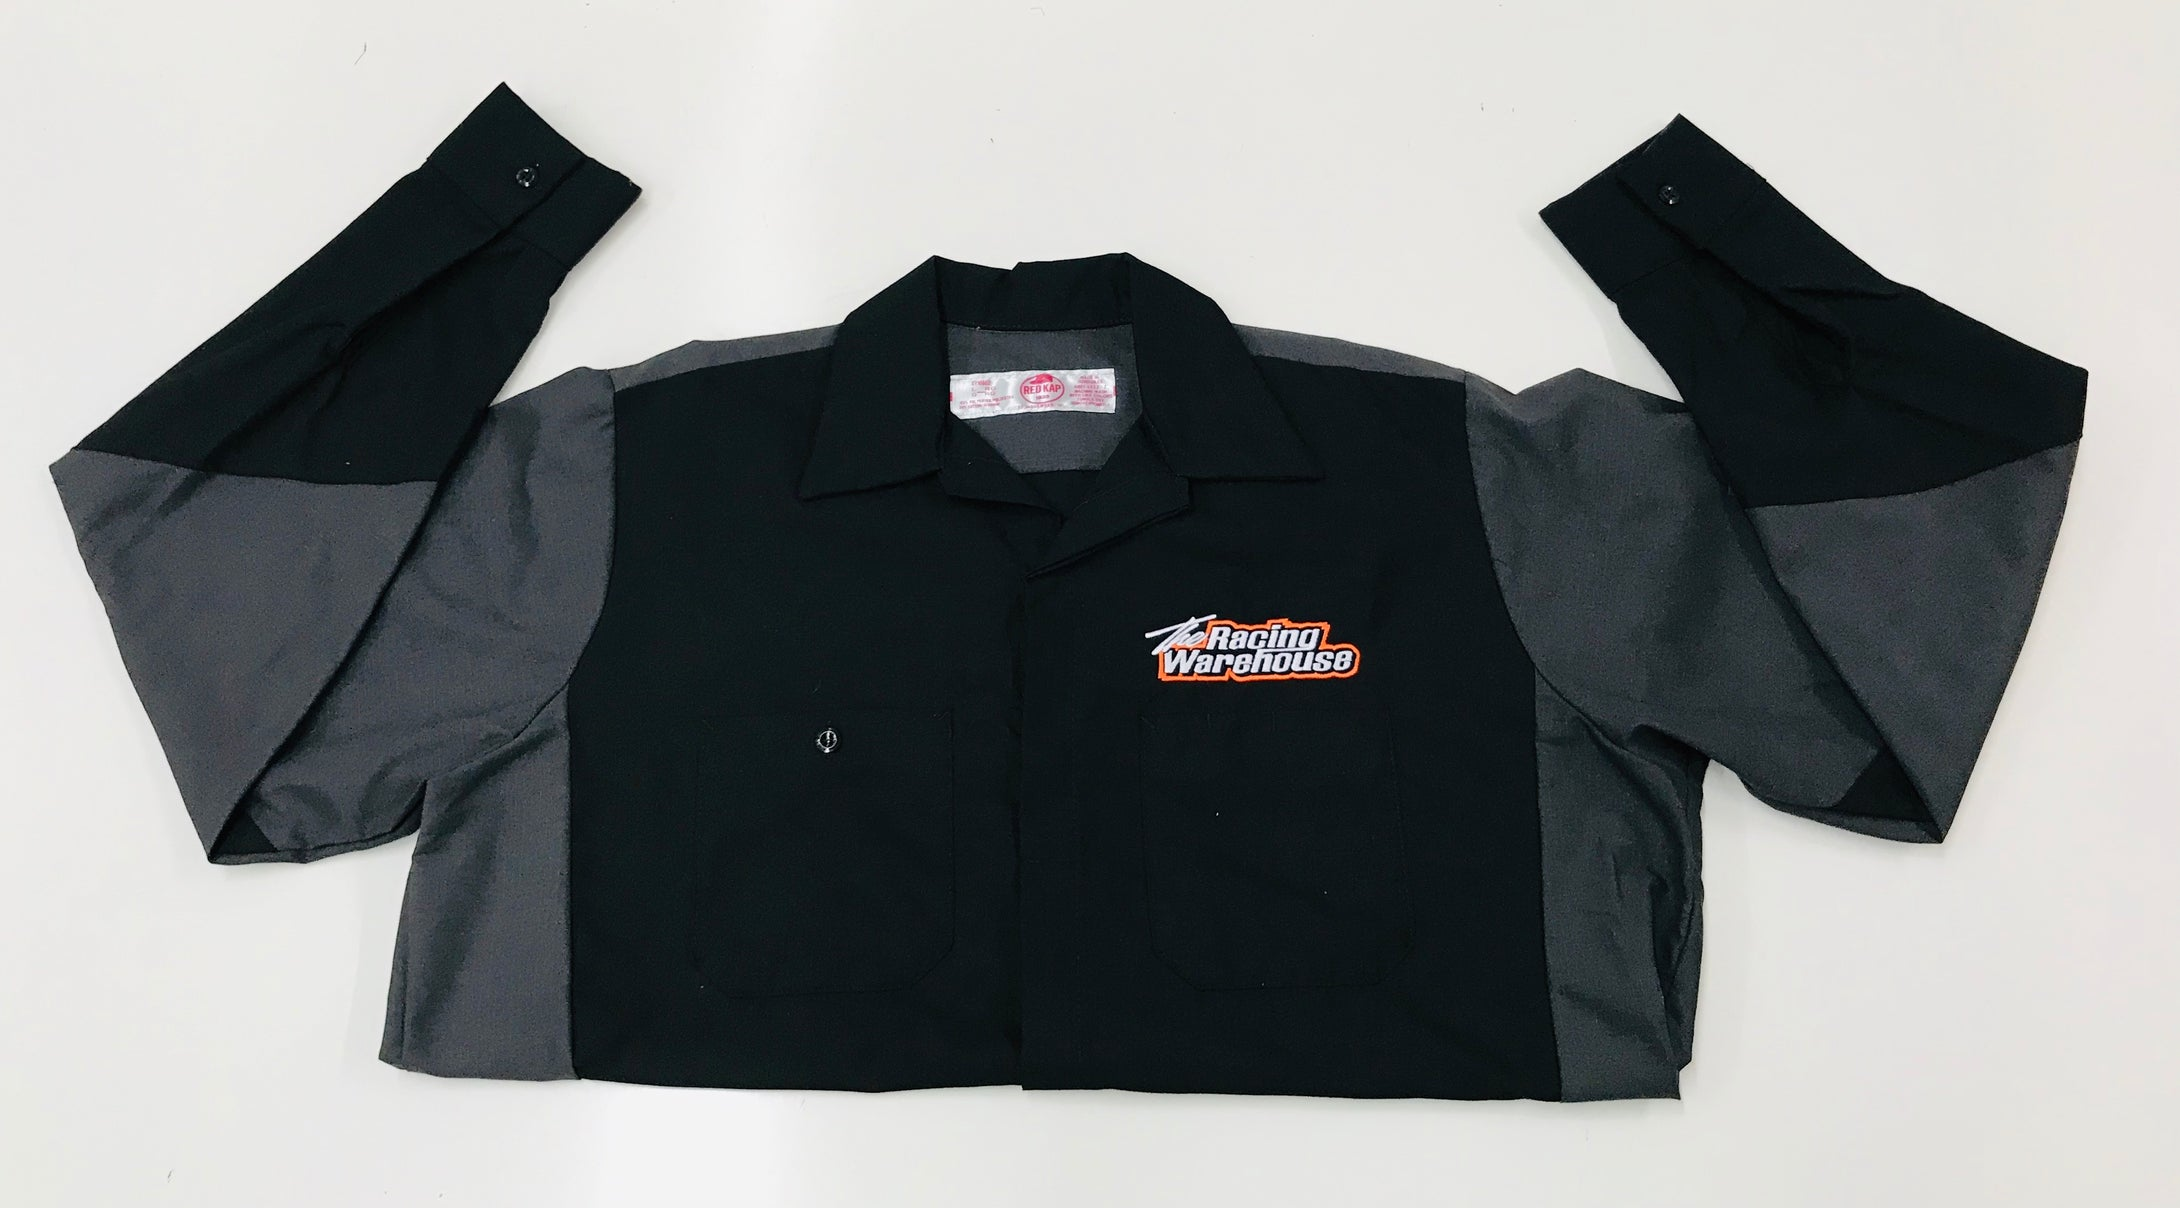 The Racing Warehouse Shop Shirt Long Sleeve